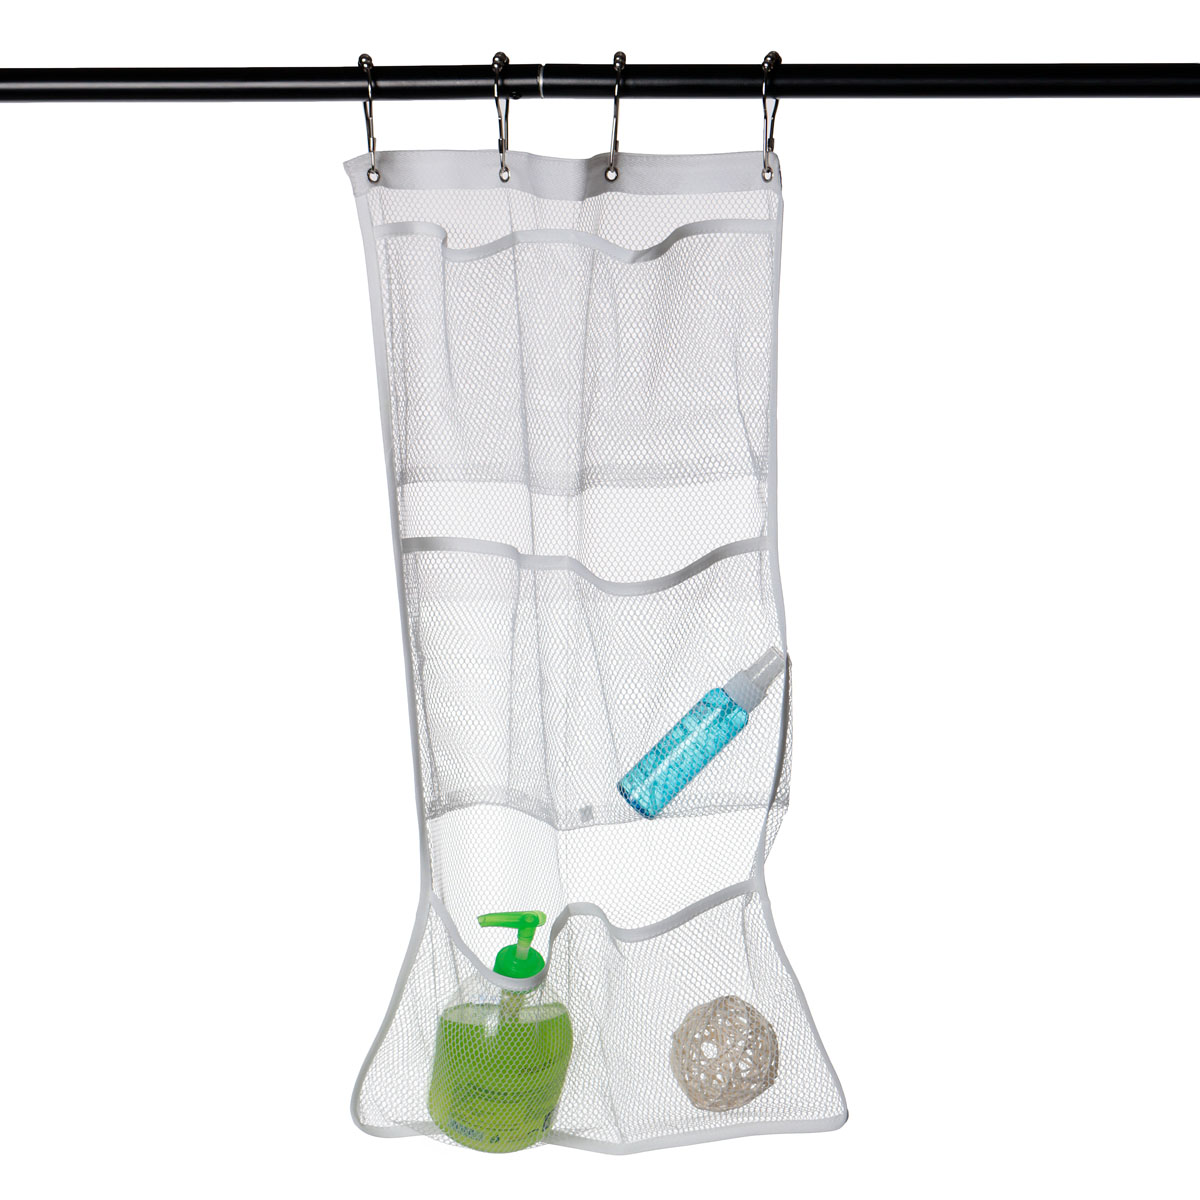 Mesh Bathroom Shower Organizer Hanging Bag Foldable 6 Pockets Hanger Storage Caddy Cases With 4 Hook Travel Supplies(China (Mainland))